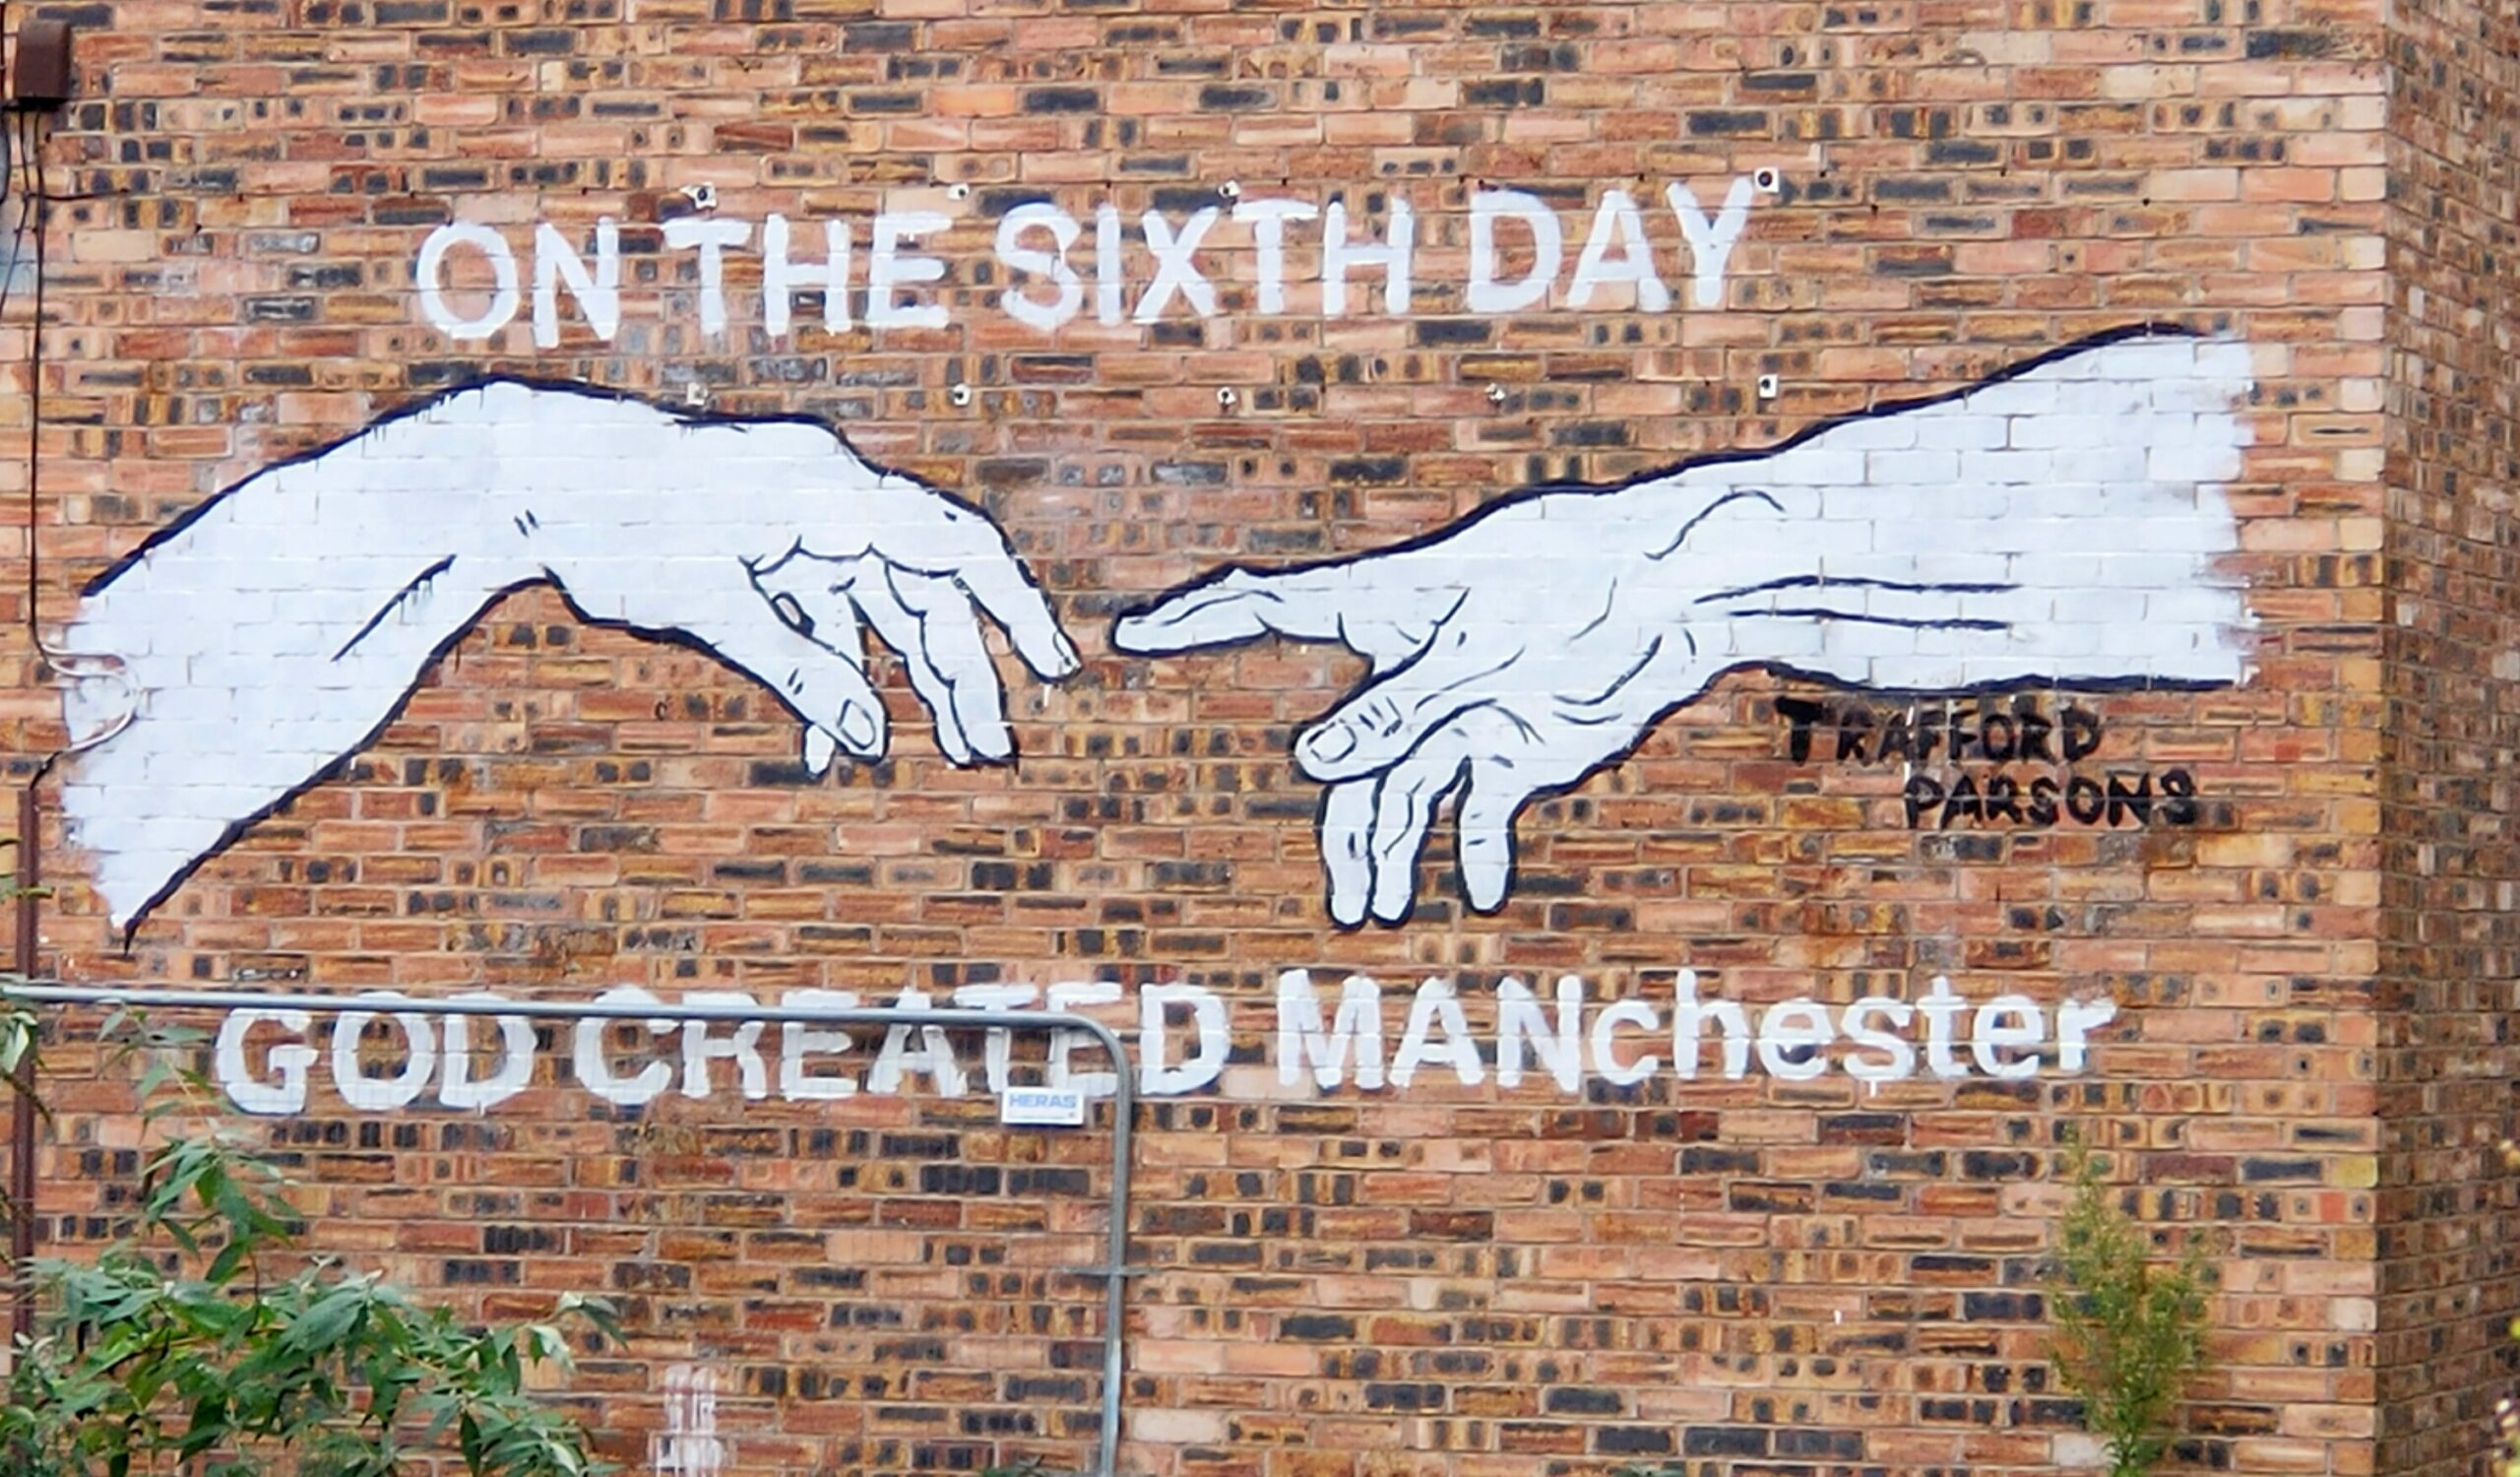 on the 6th day god created manchester